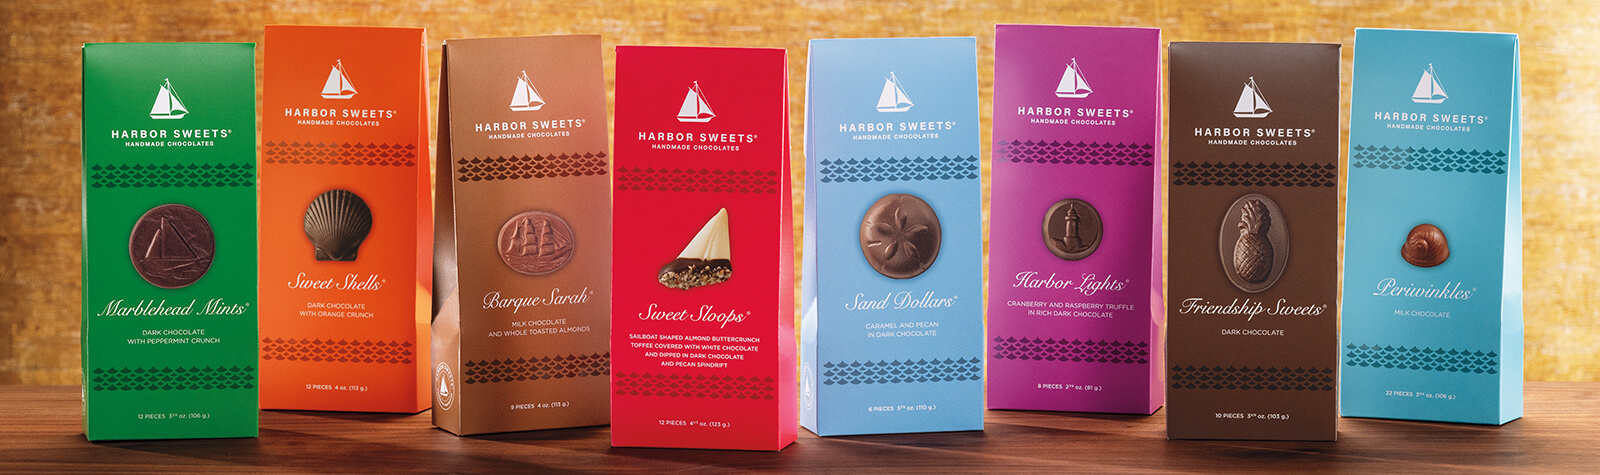 Gable Boxes - Harbor Sweets